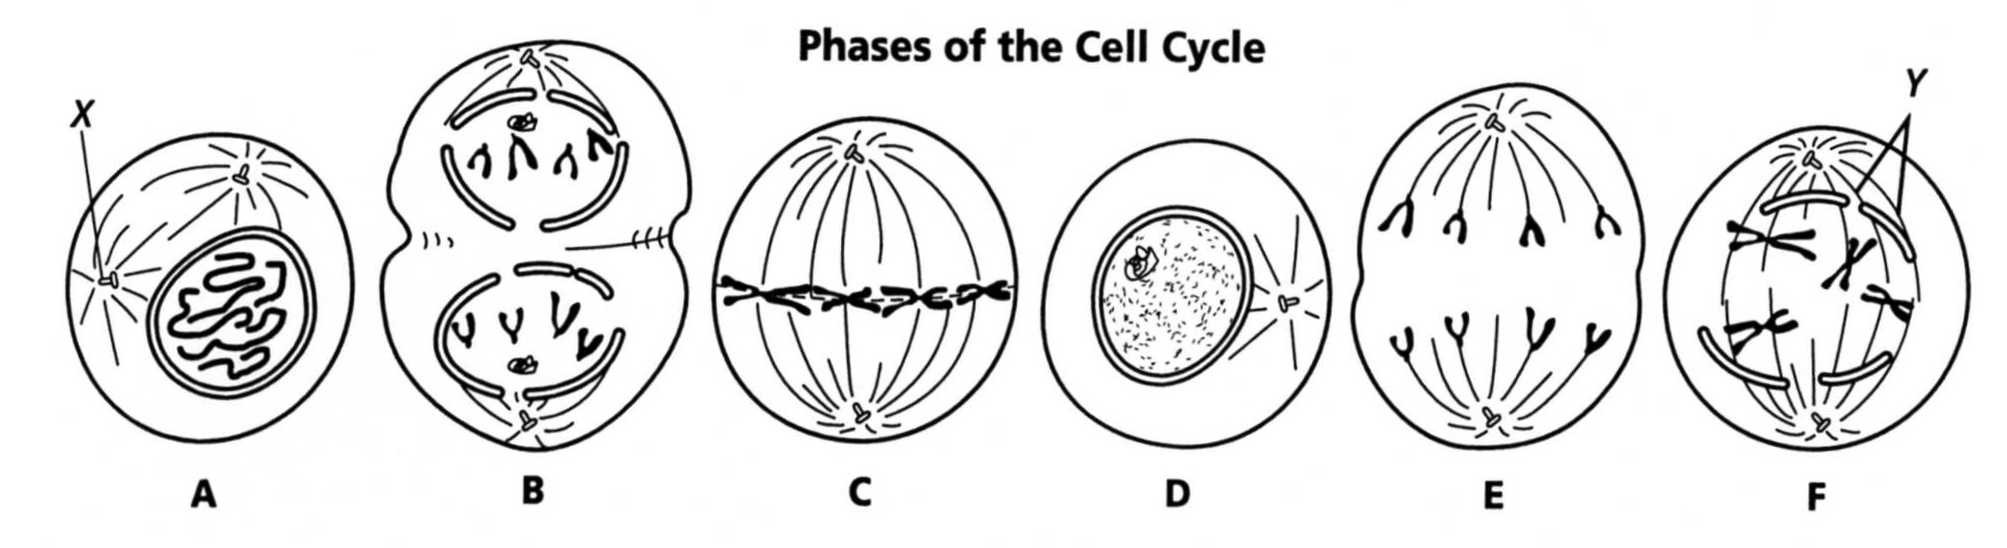 Phases Of The Cell Cycle Worksheet Answers – Cell Cycle and Mitosis Worksheet Answer Key